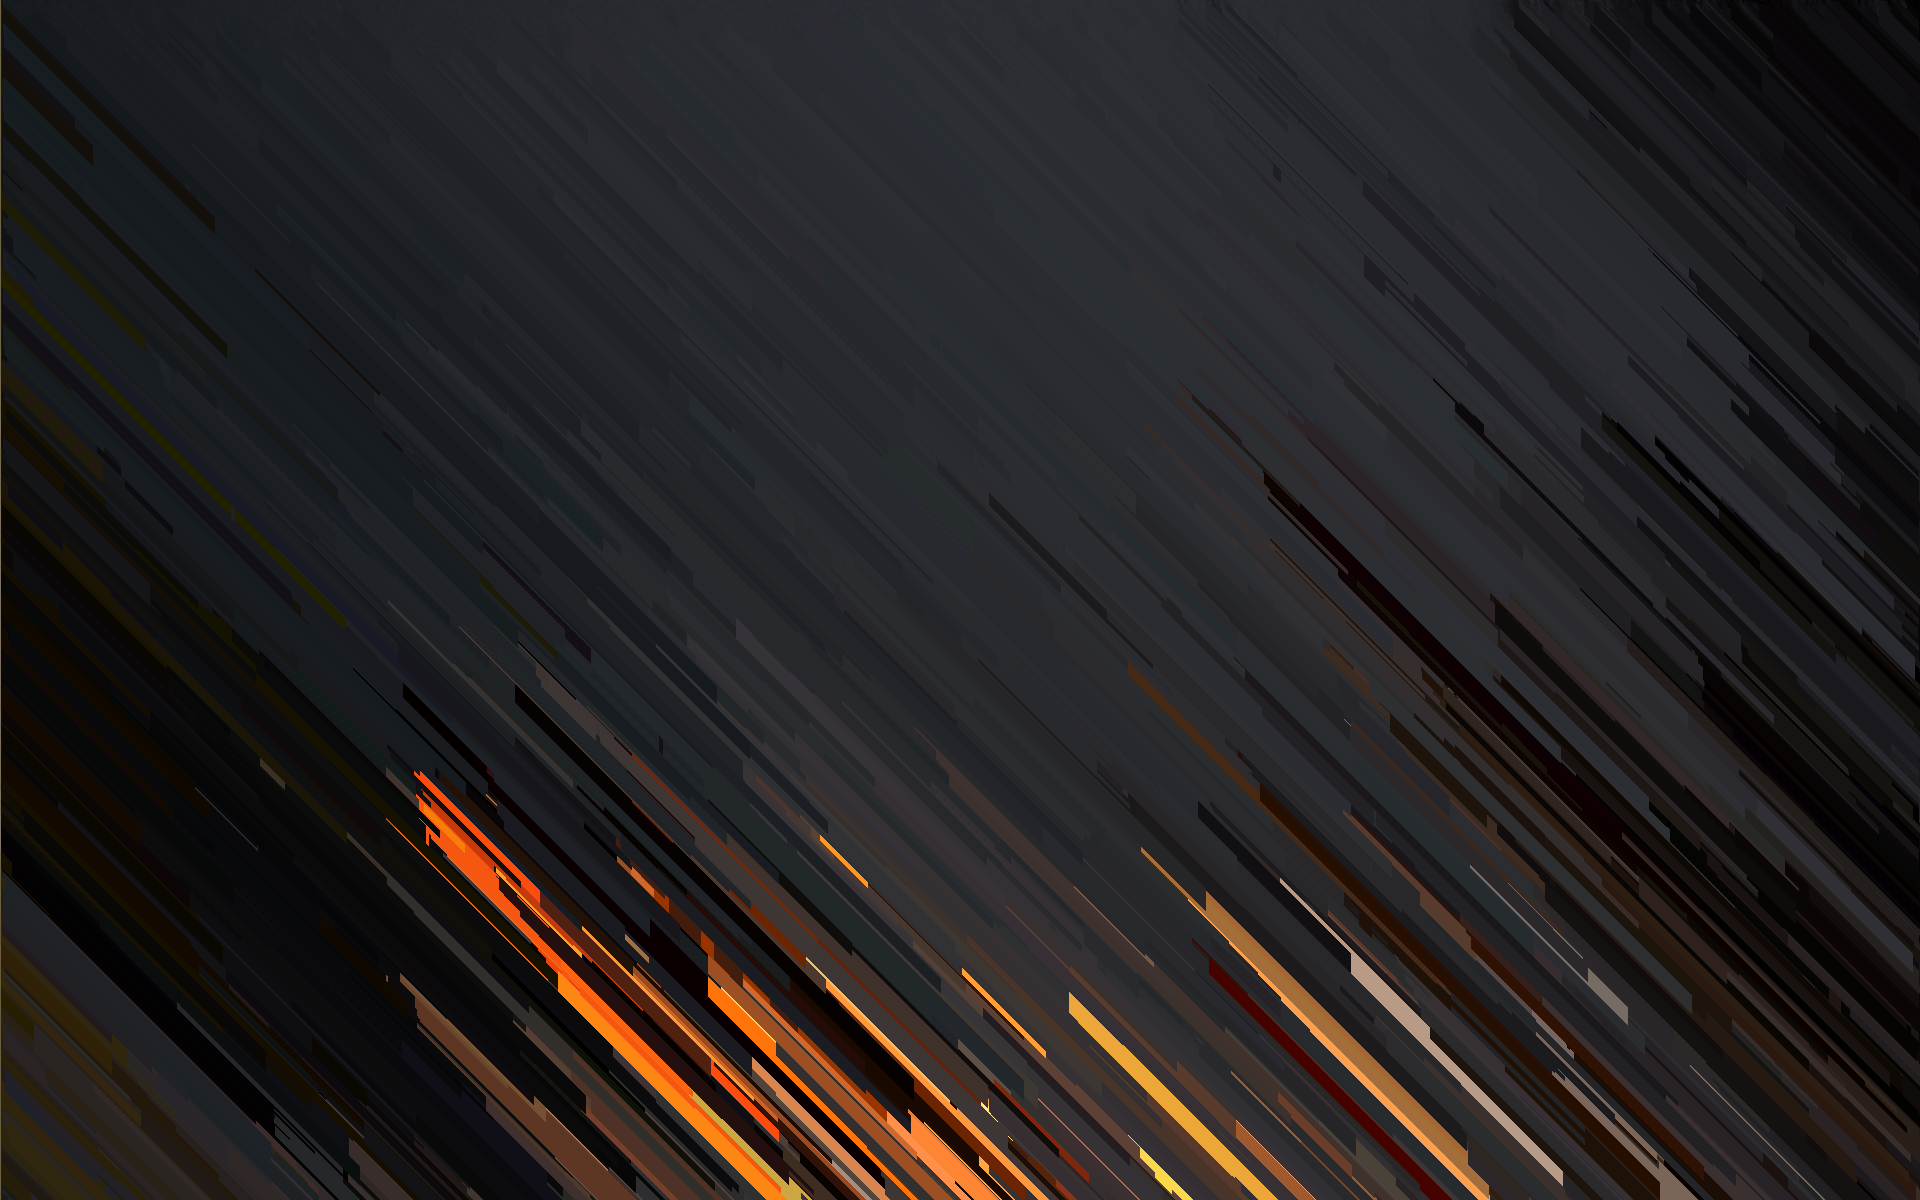 Abstract Artistic 1920x1200